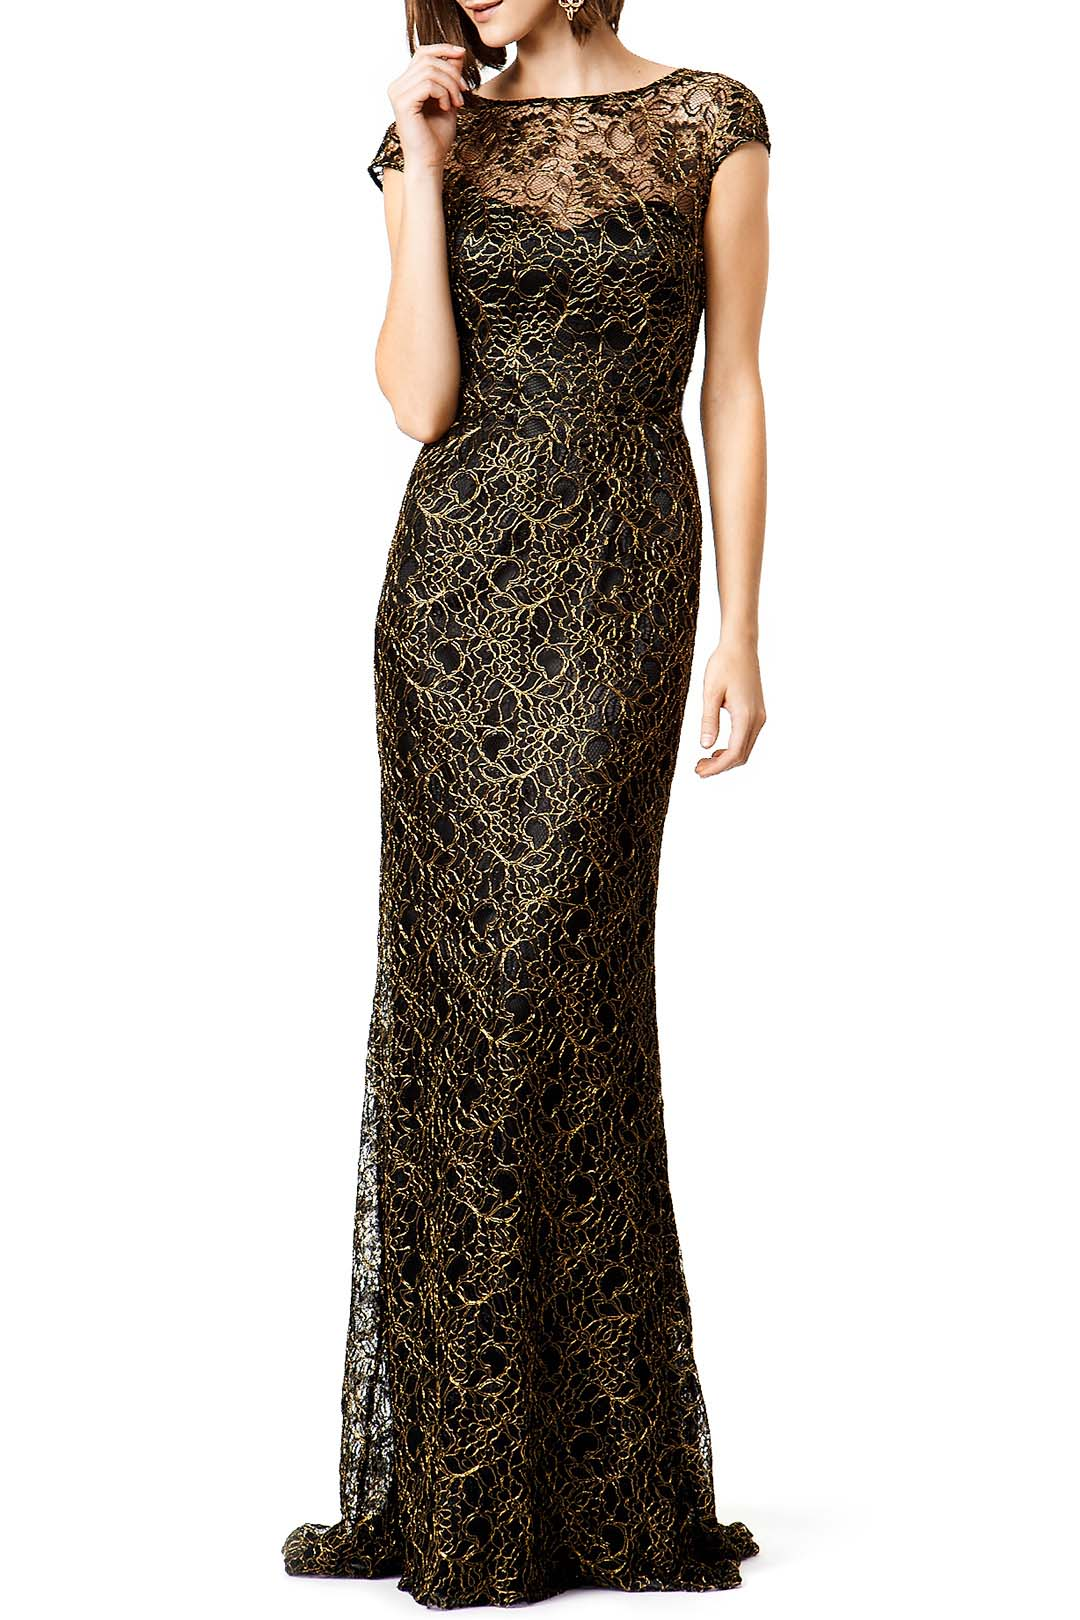 20 Masquerade Dresses You Can Rent & Masks That Match ...